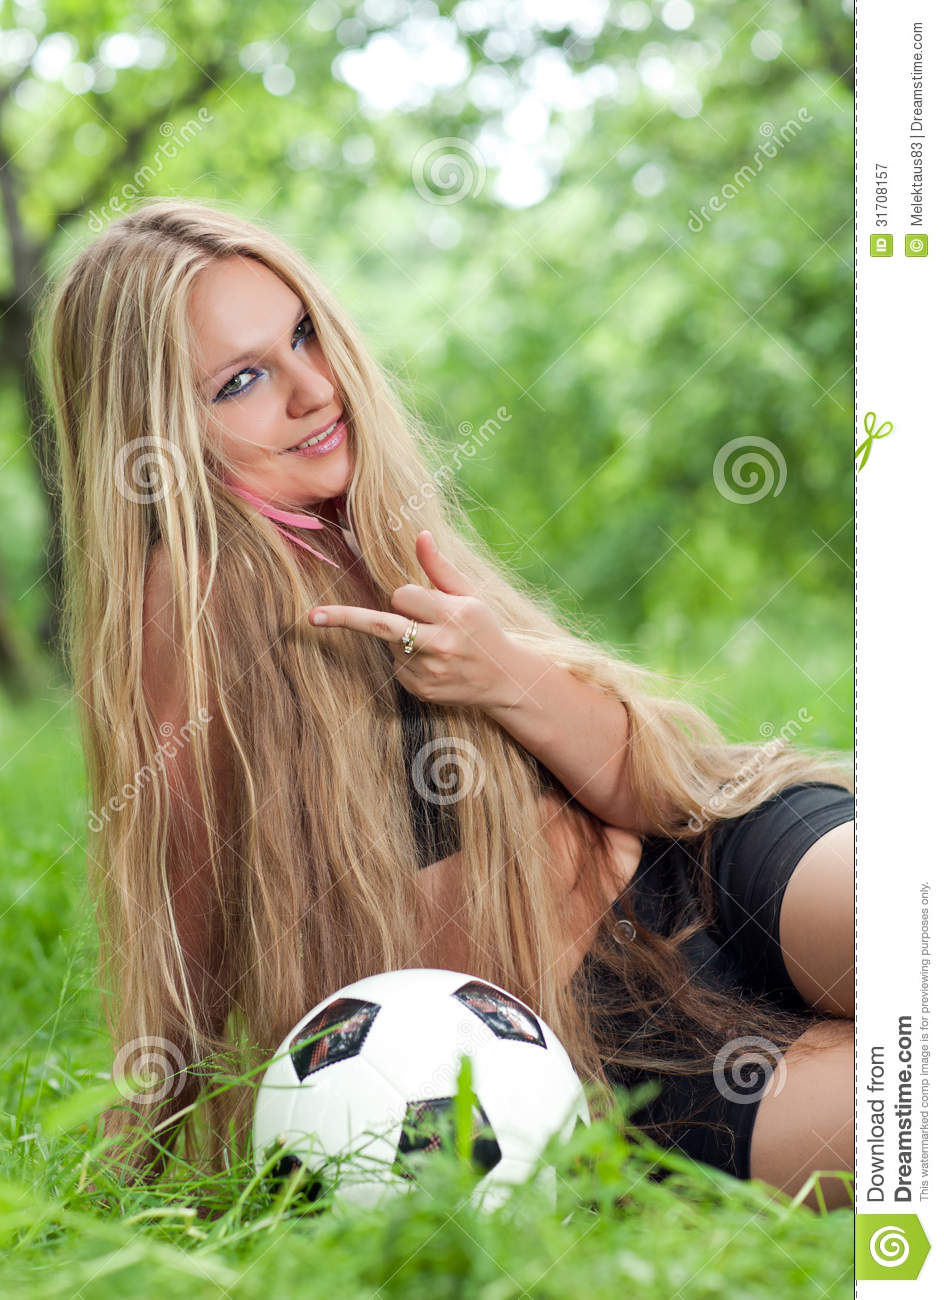 How Long Is A Football Pitch >> Football hooligan stock image. Image of actions, ball - 31708157